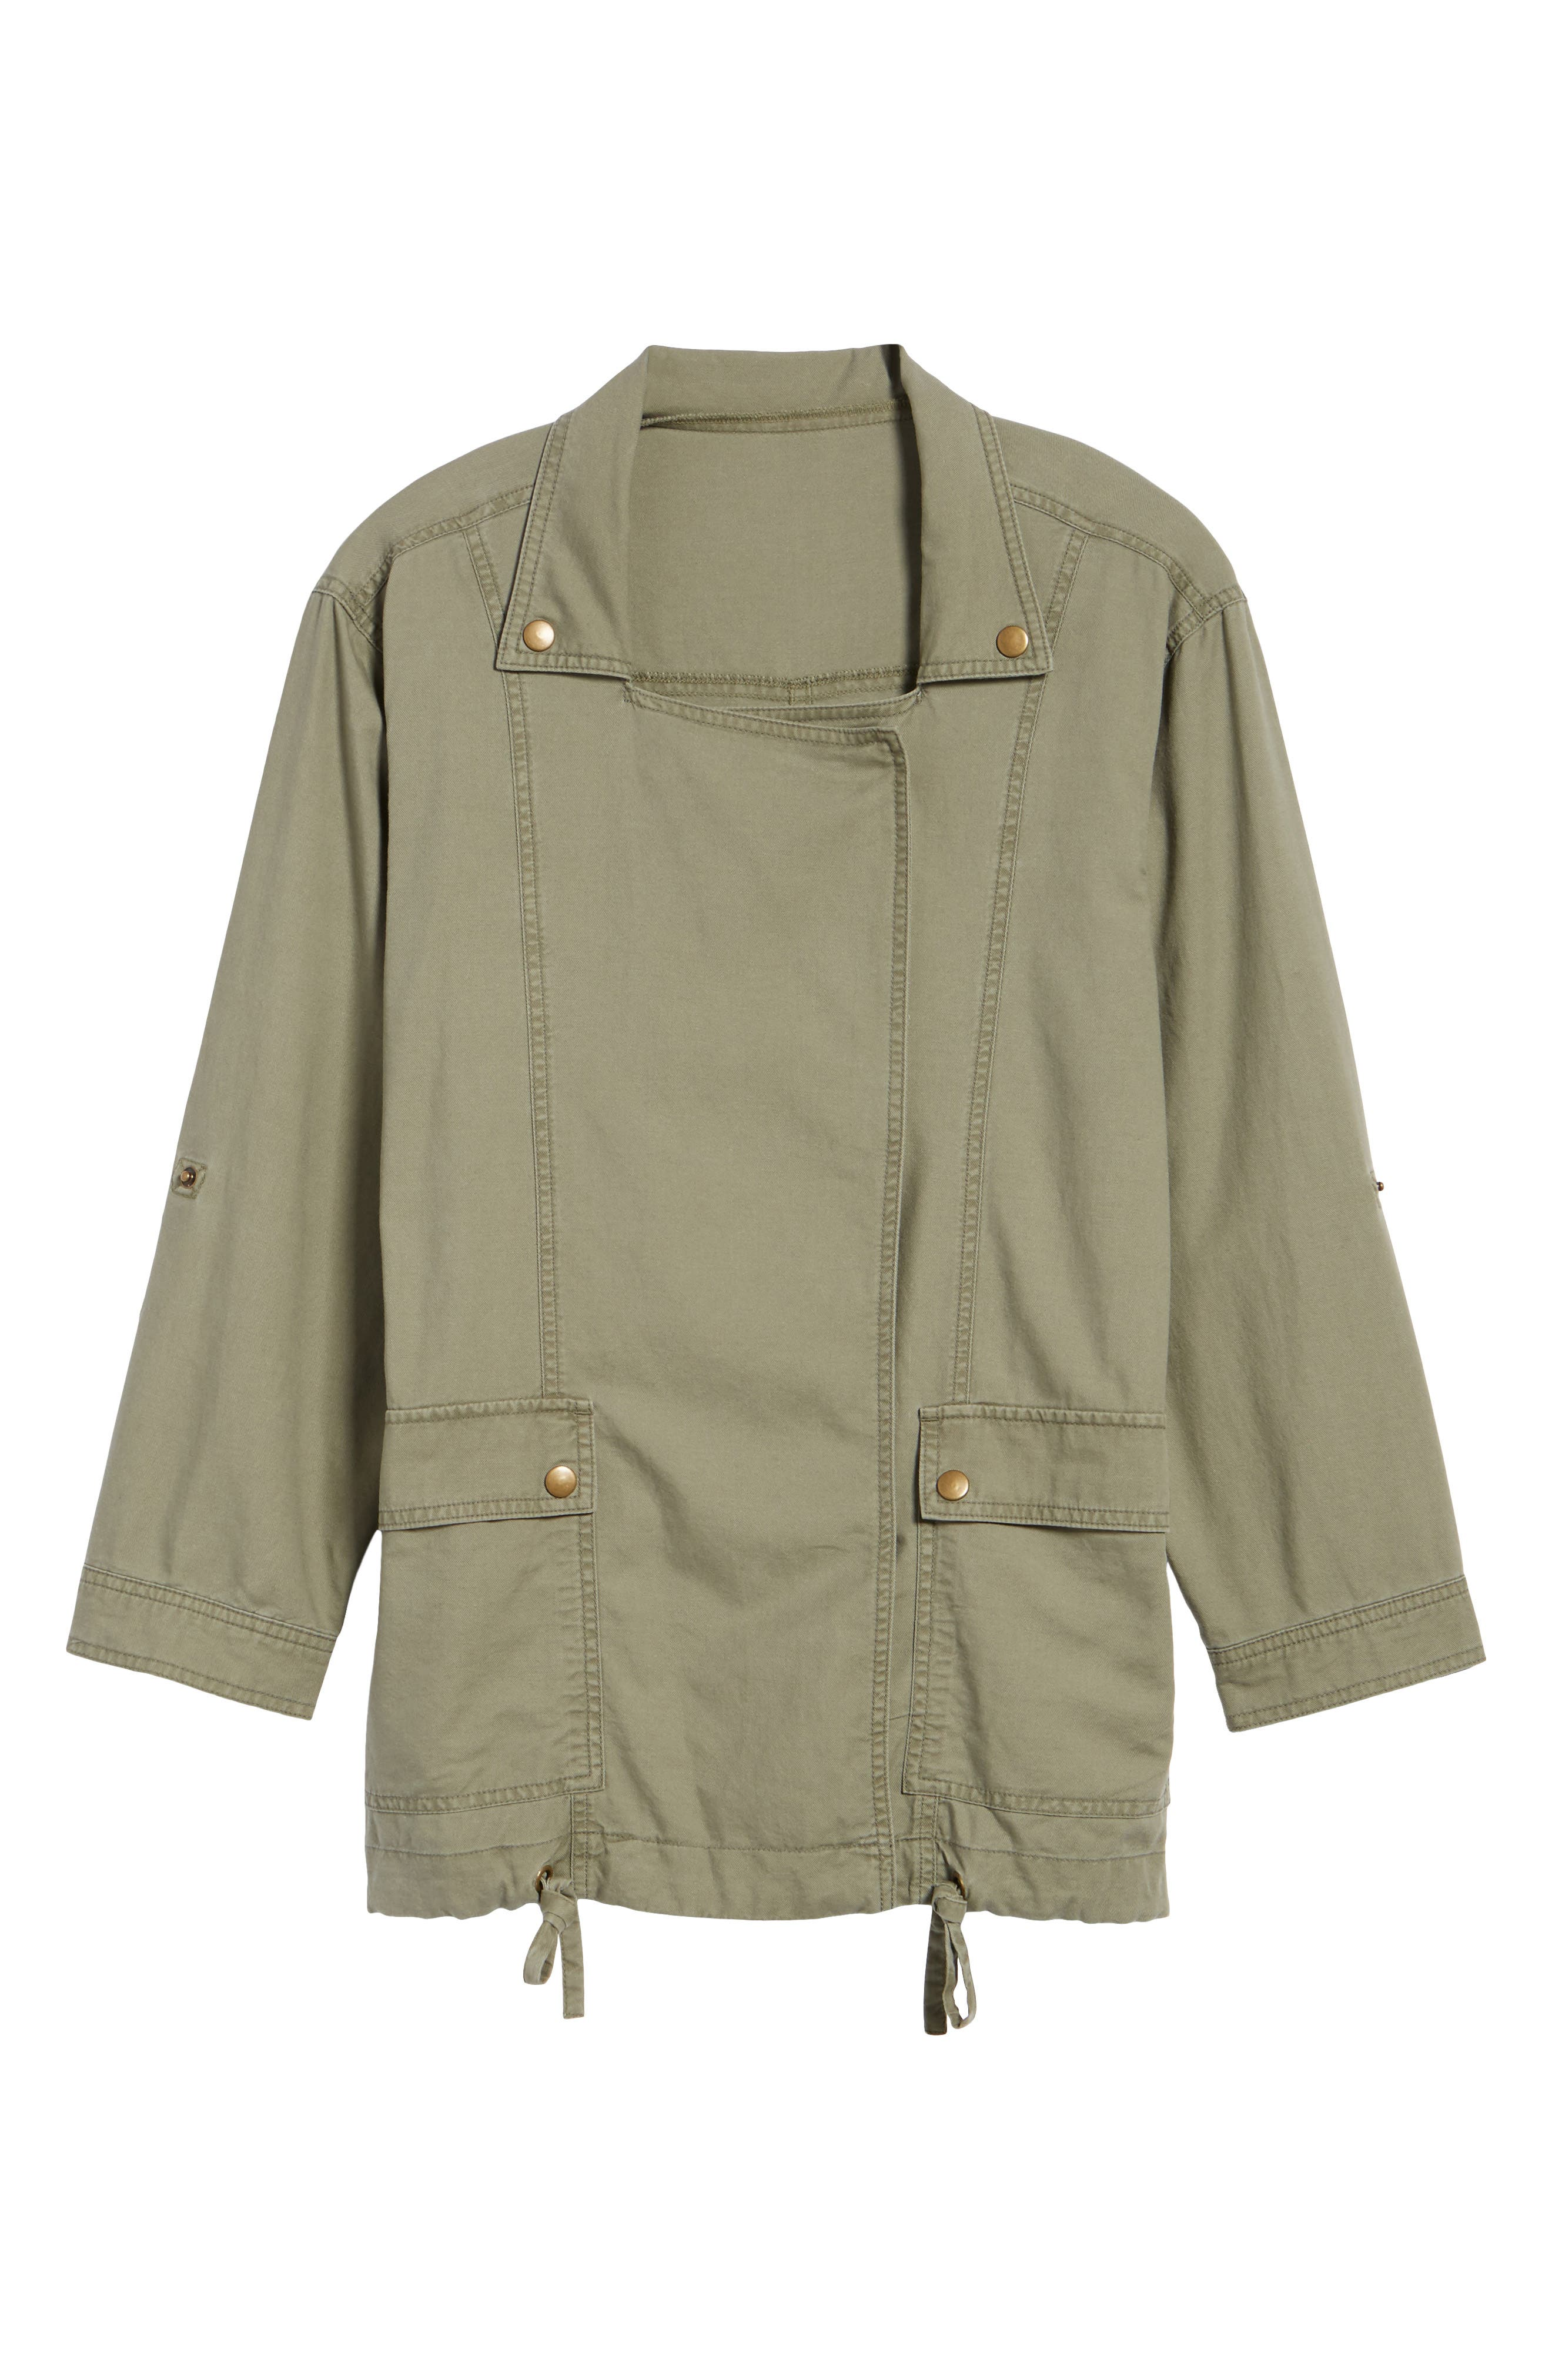 Roll Sleeve Utility Jacket,                         Main,                         color, Olive